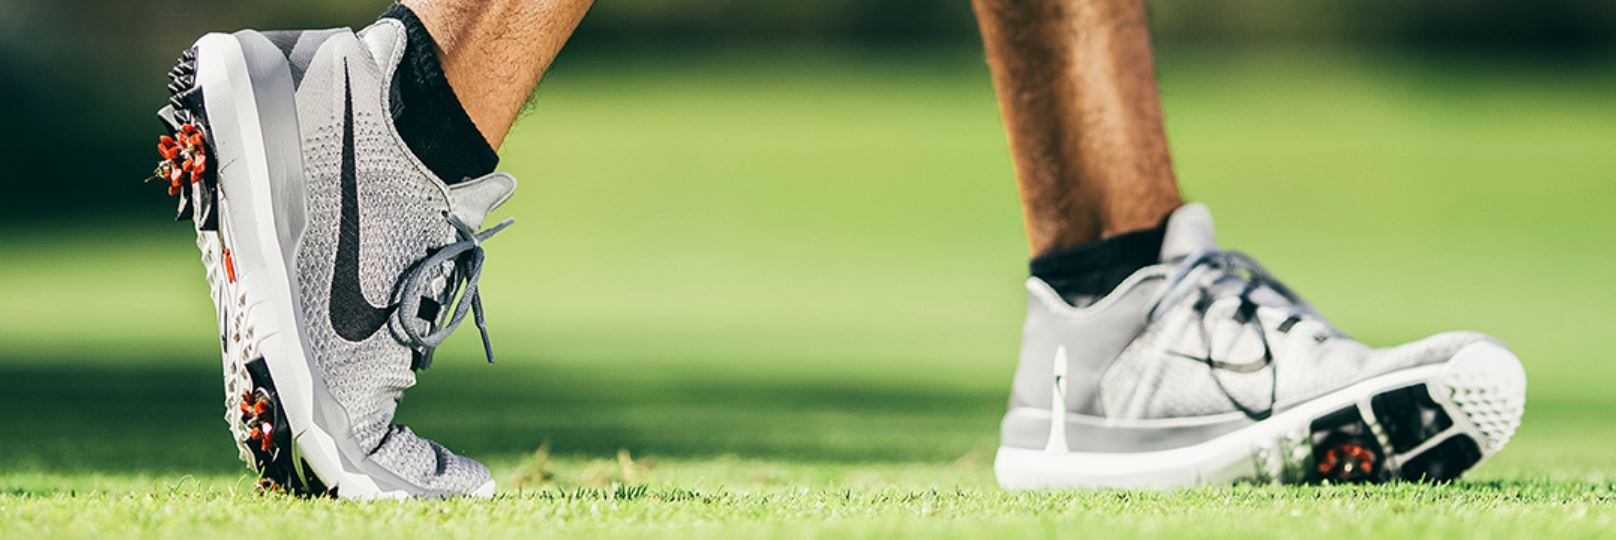 Golf Shoes For Beginners